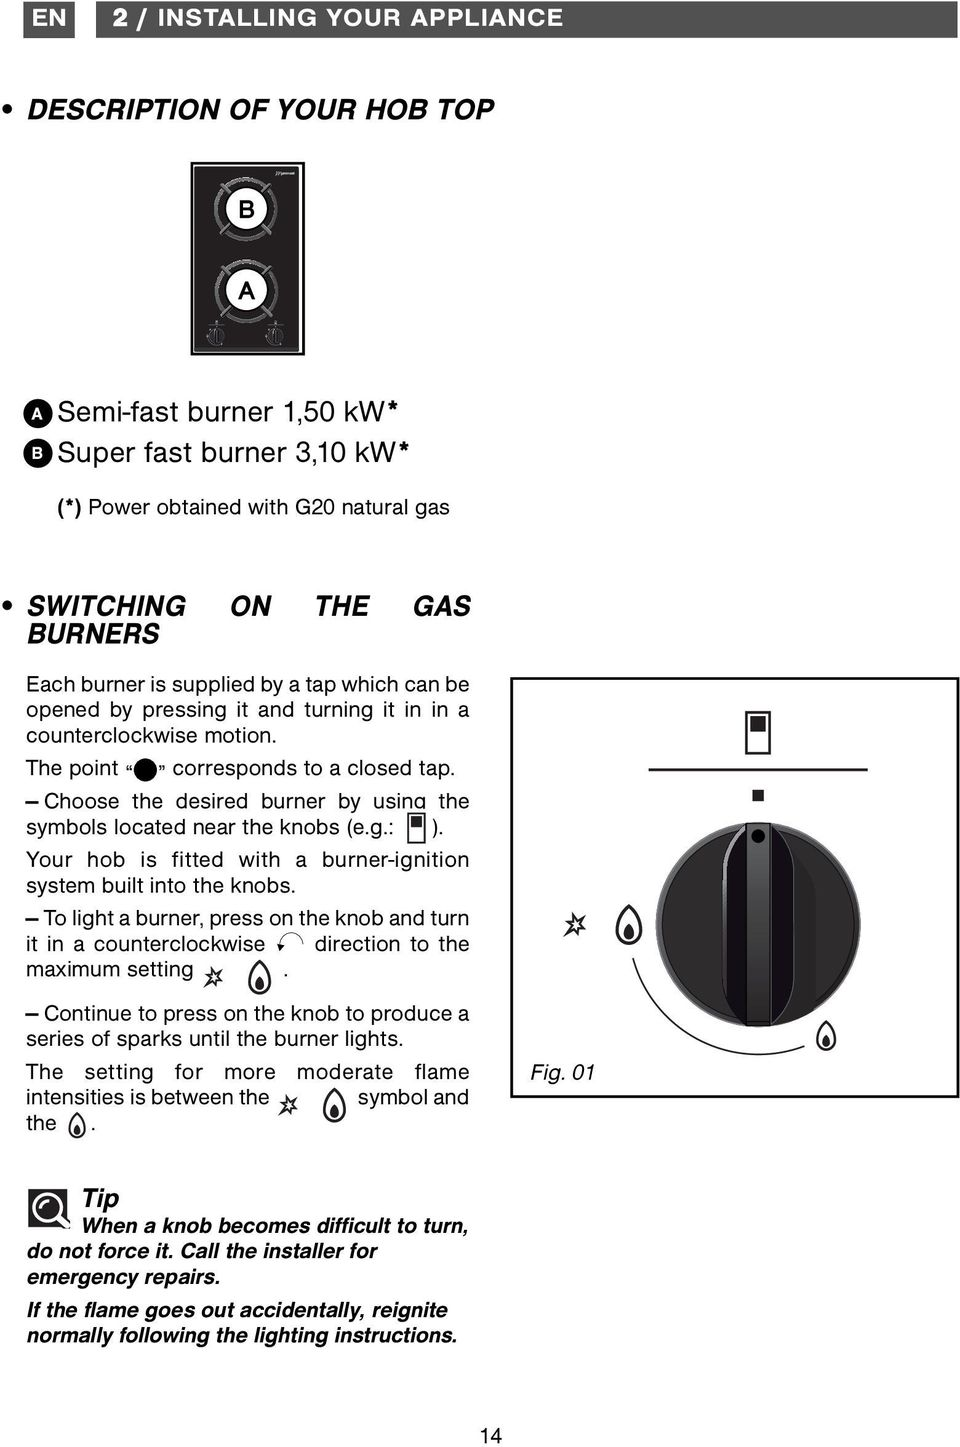 Choose the desired burner by using the symbols located near the knobs (e.g.: ). Your hob is fitted with a burner-ignition system built into the knobs.